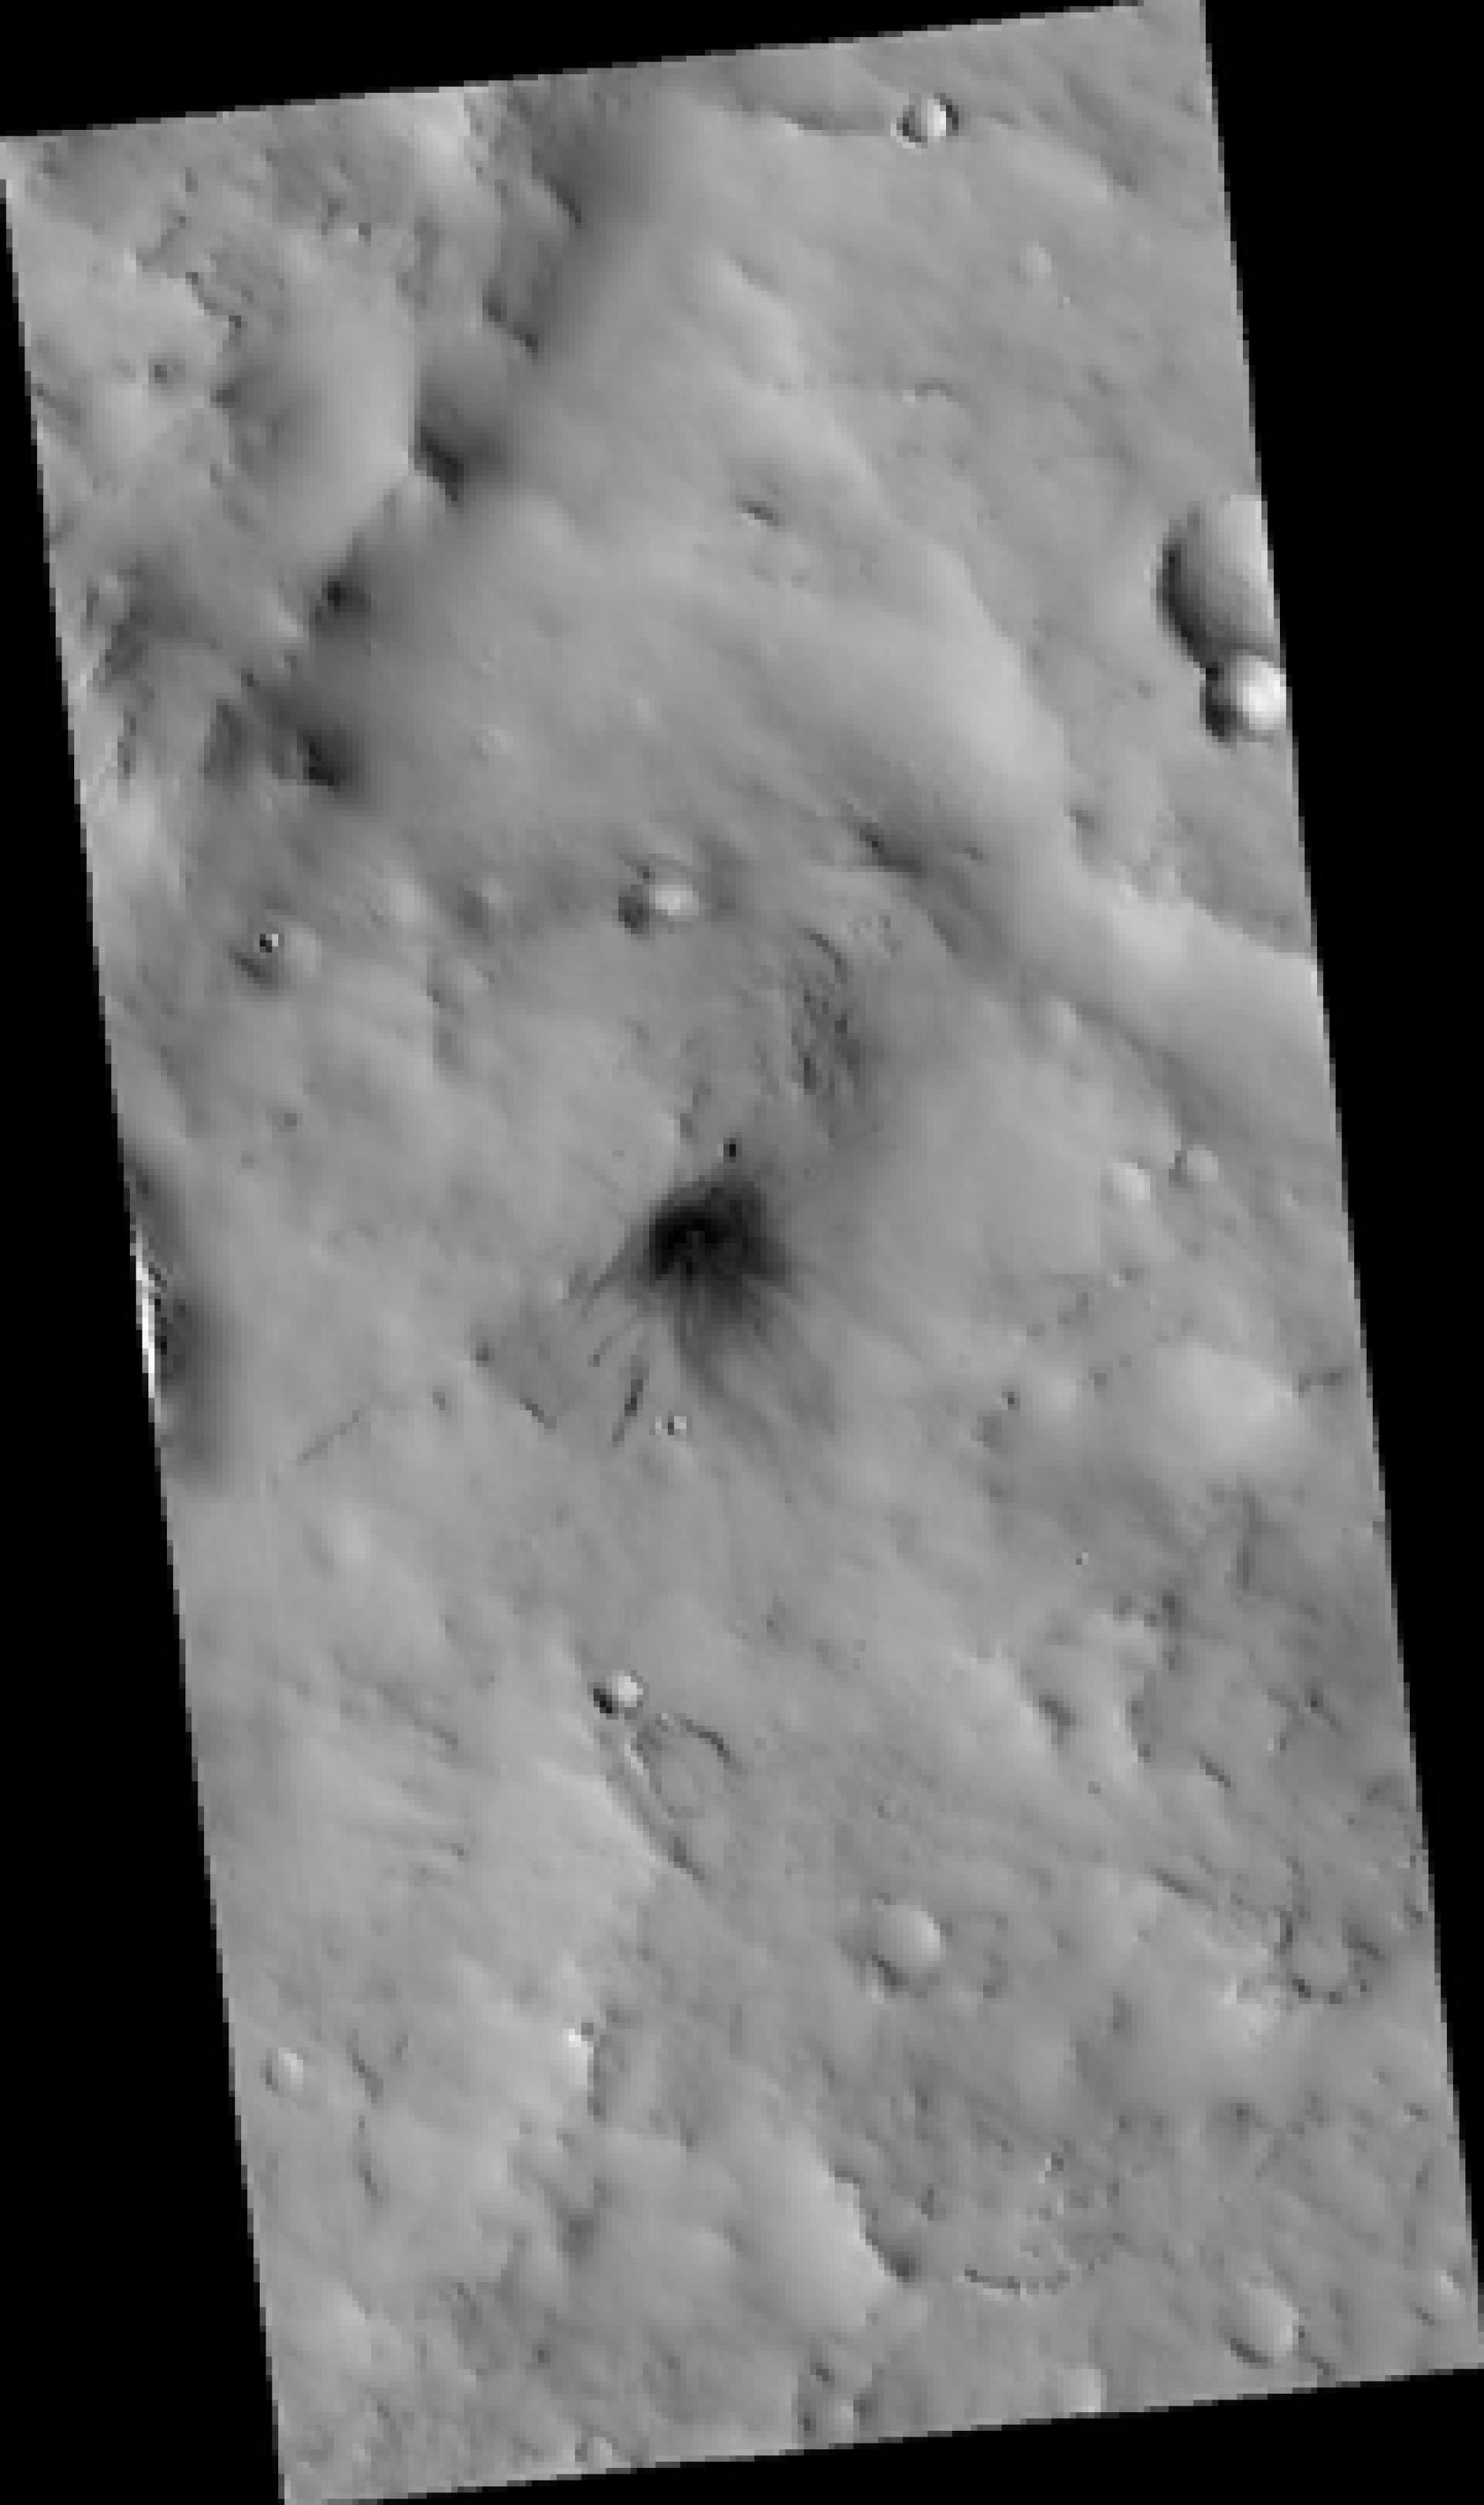 The High Resolution Imaging Experiment  camera operated at The University of Arizona returned this image  of a very recent dark impact crater. The impact happened only a few years or decades ago. The crater itself is small -- only about 60 feet wide -- bu